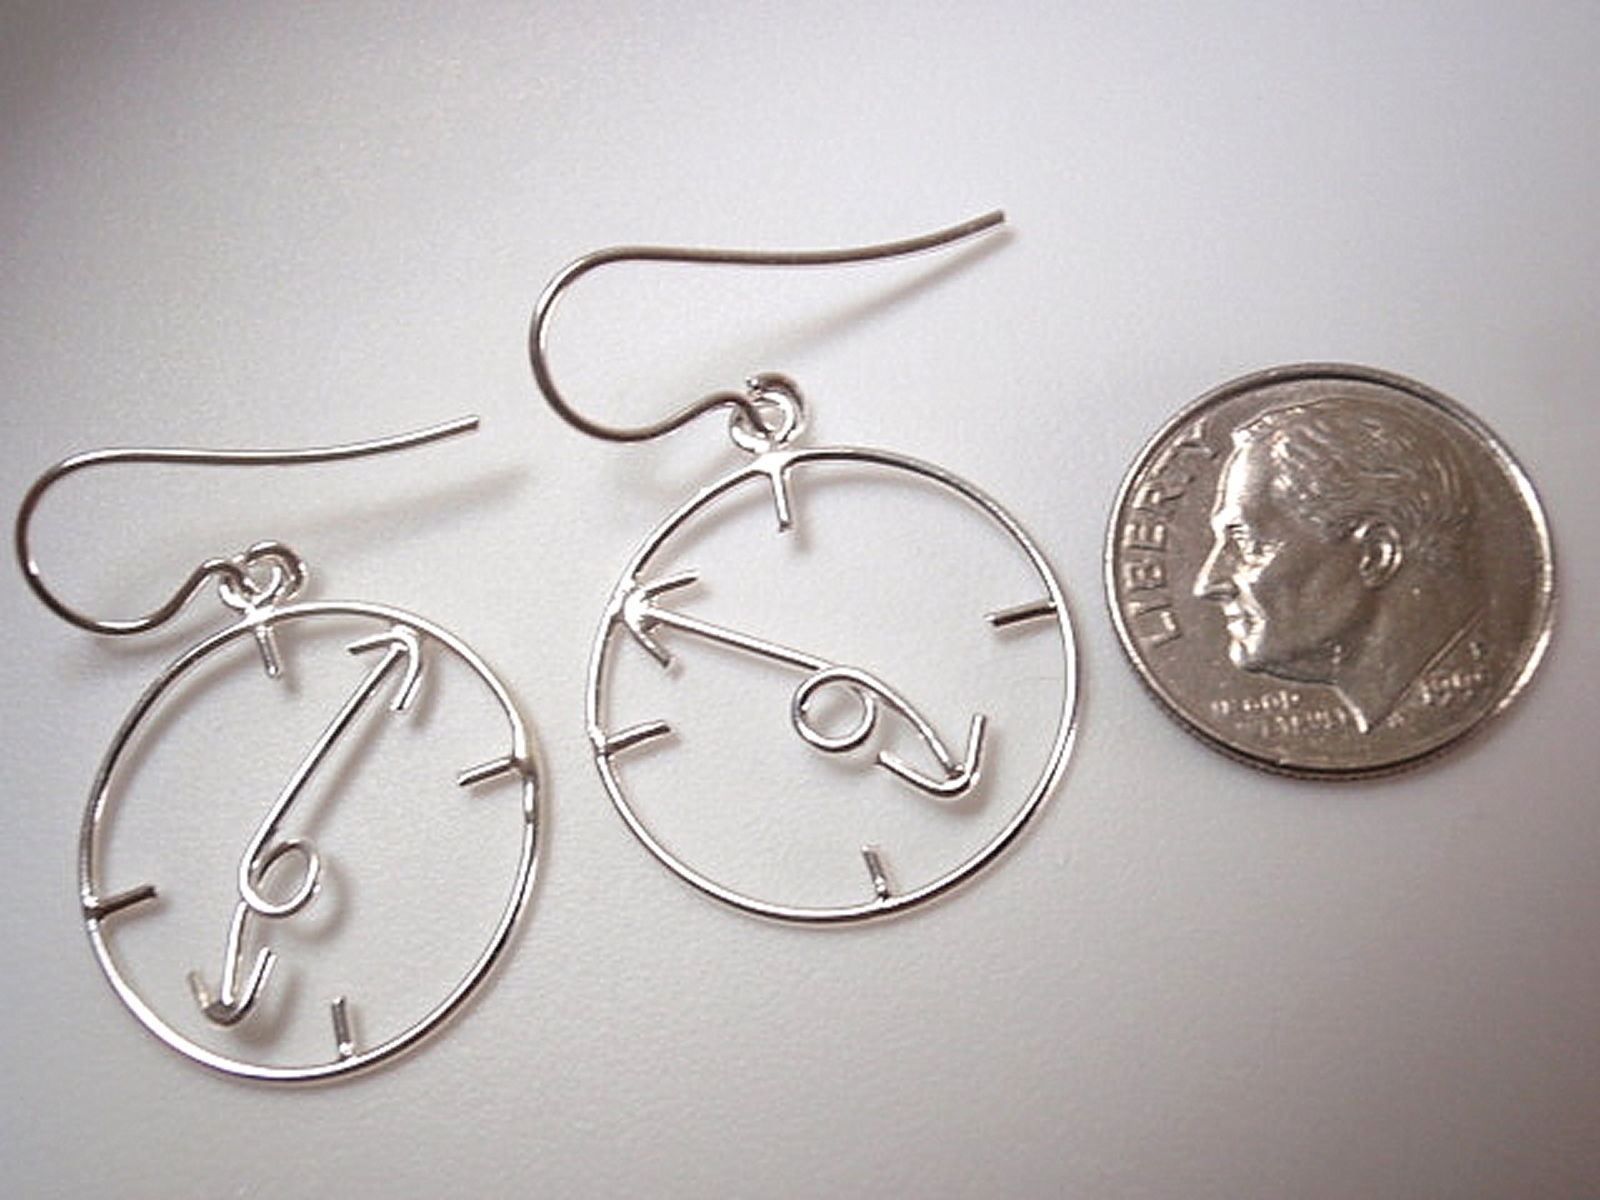 Primary image for Clock Dangle Earrings 925 Sterling Silver Corona Sun Jewelry Time